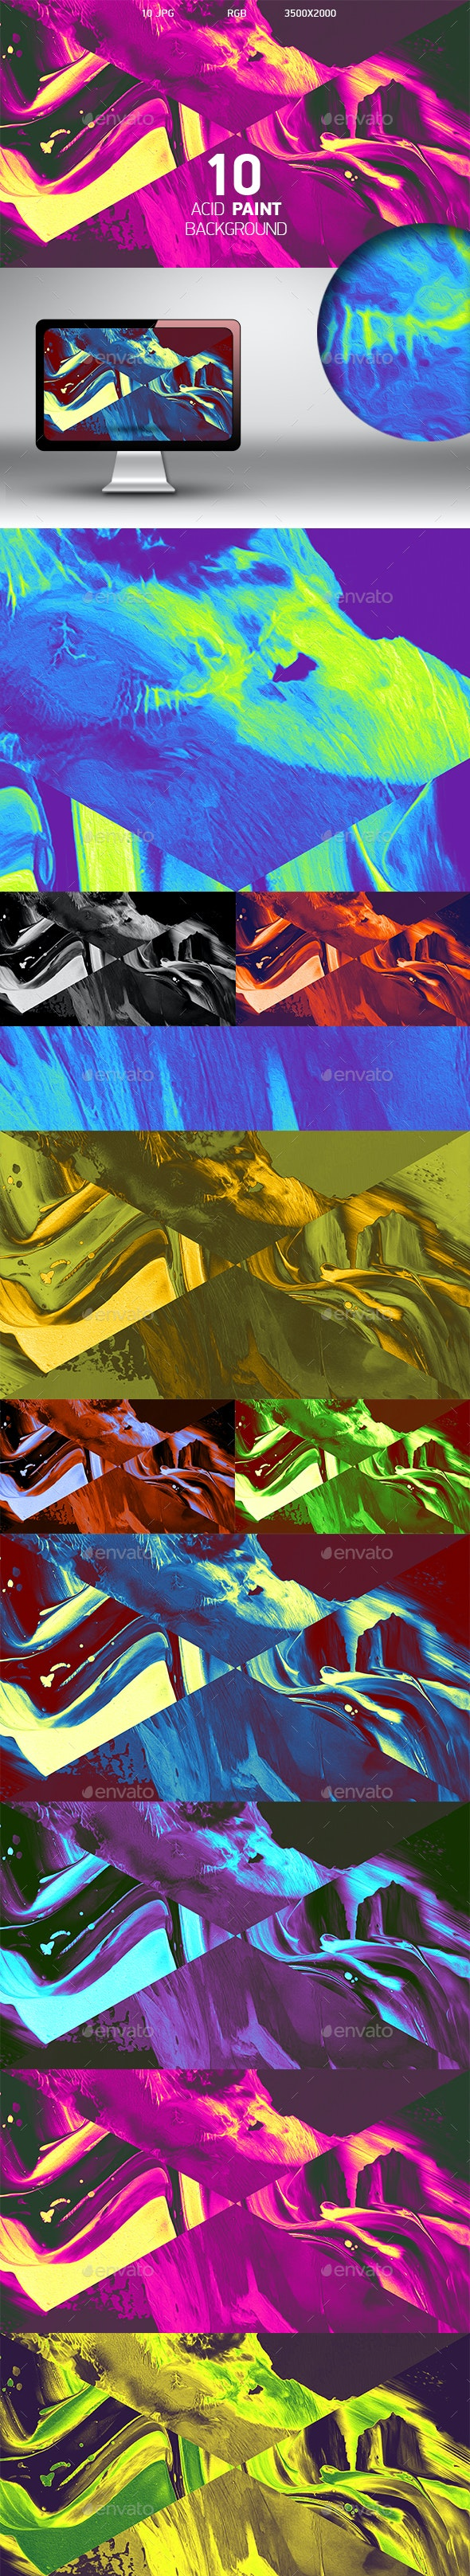 Acid Paint Background - Abstract Backgrounds